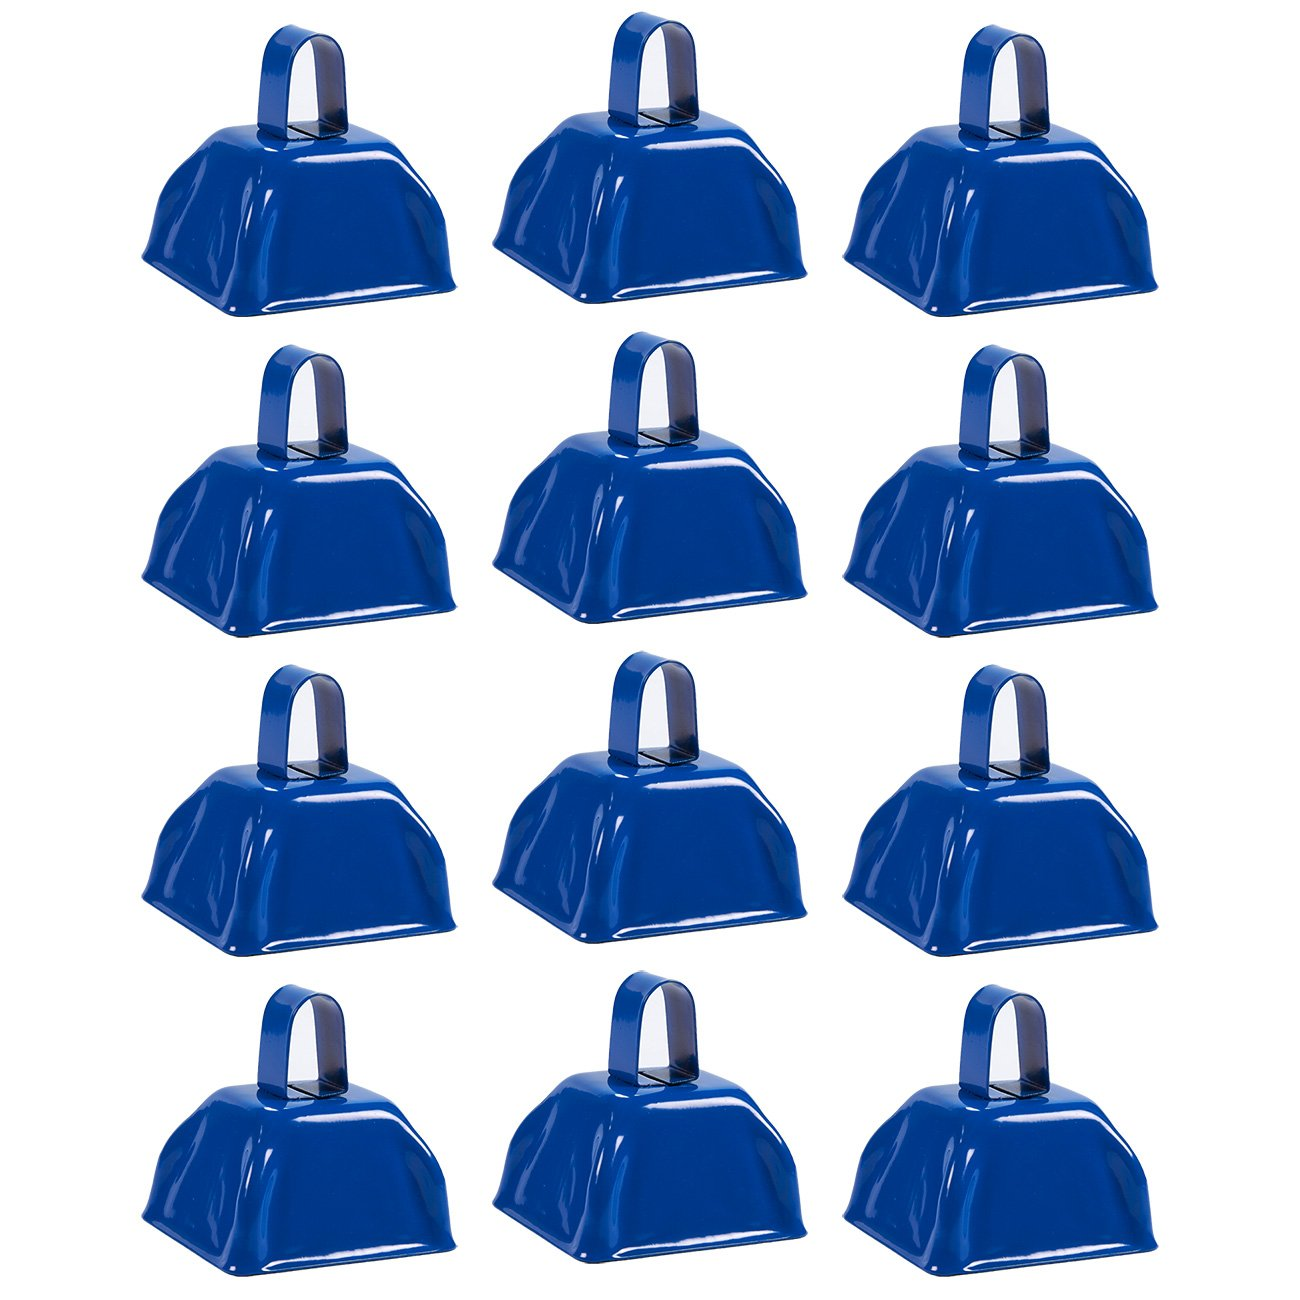 Cow Bell Set - 12-Count Loud Bells with Handles, Cowbells, Noisemaker Call Bells for Football Games, Weddings, Classroom Use, Blue - 3 x 2.8 x 2.49 inches by Blue Panda